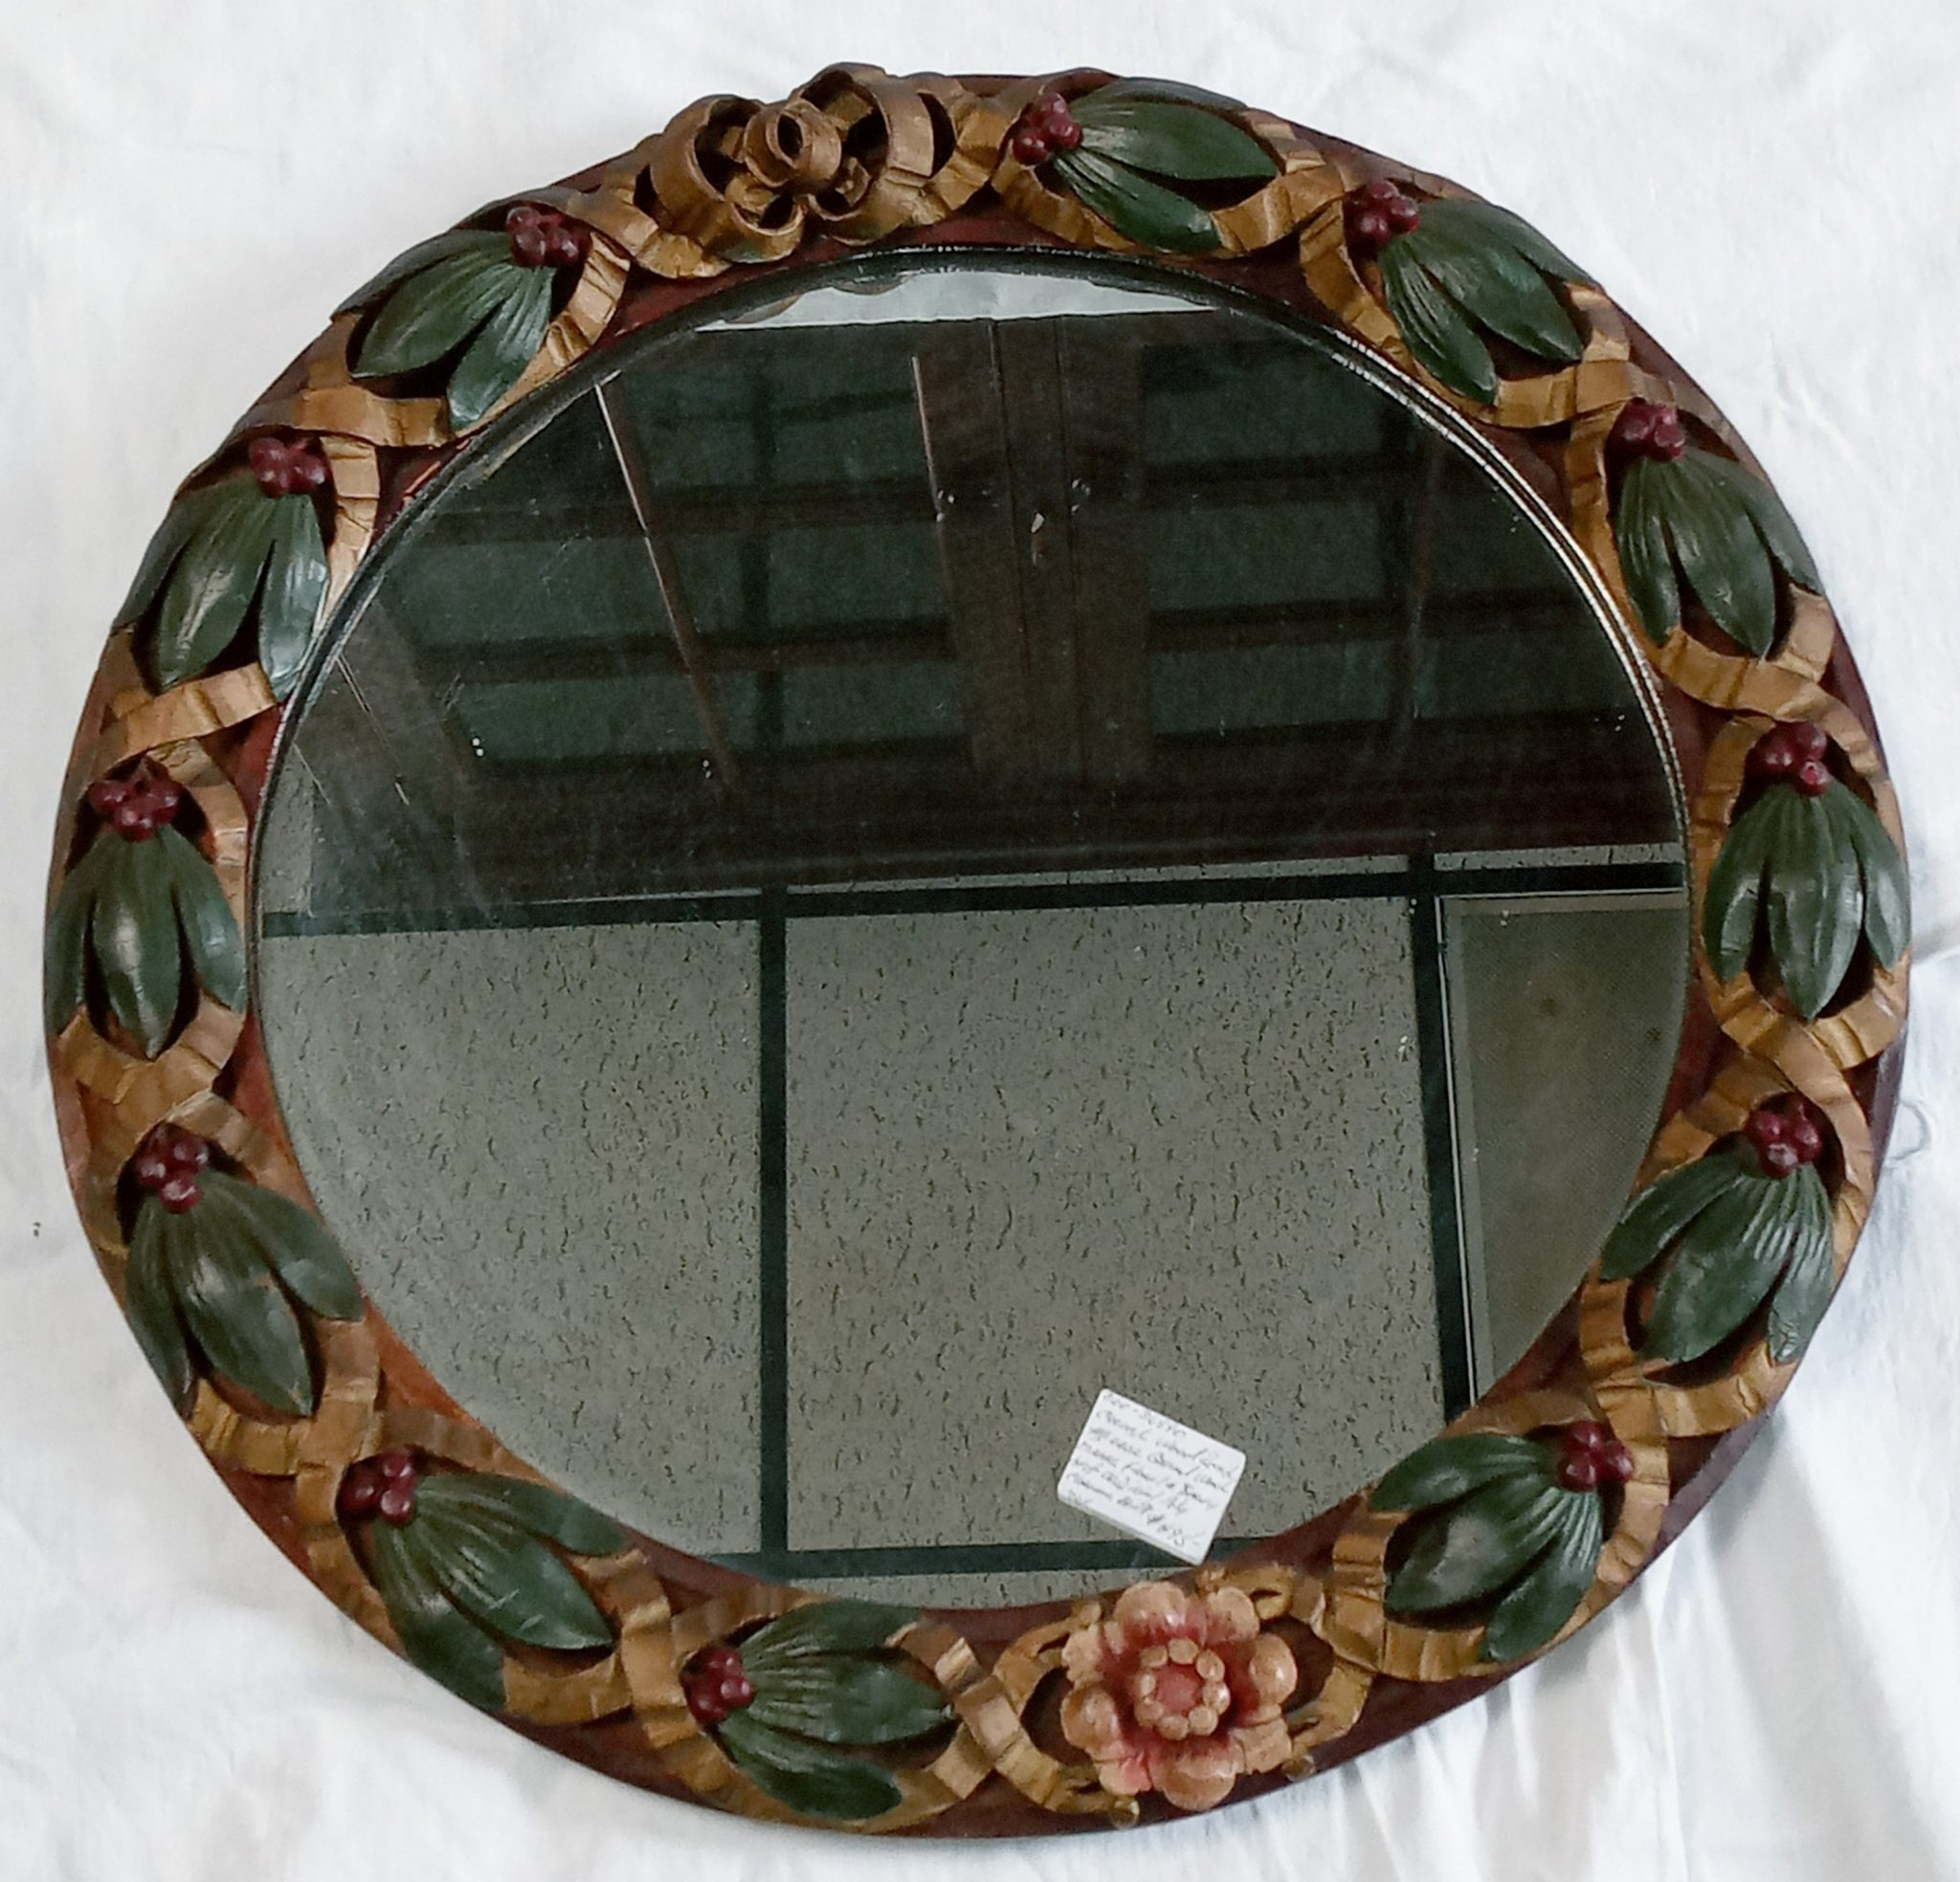 200-36590 Round mirror with carved wood frame Image